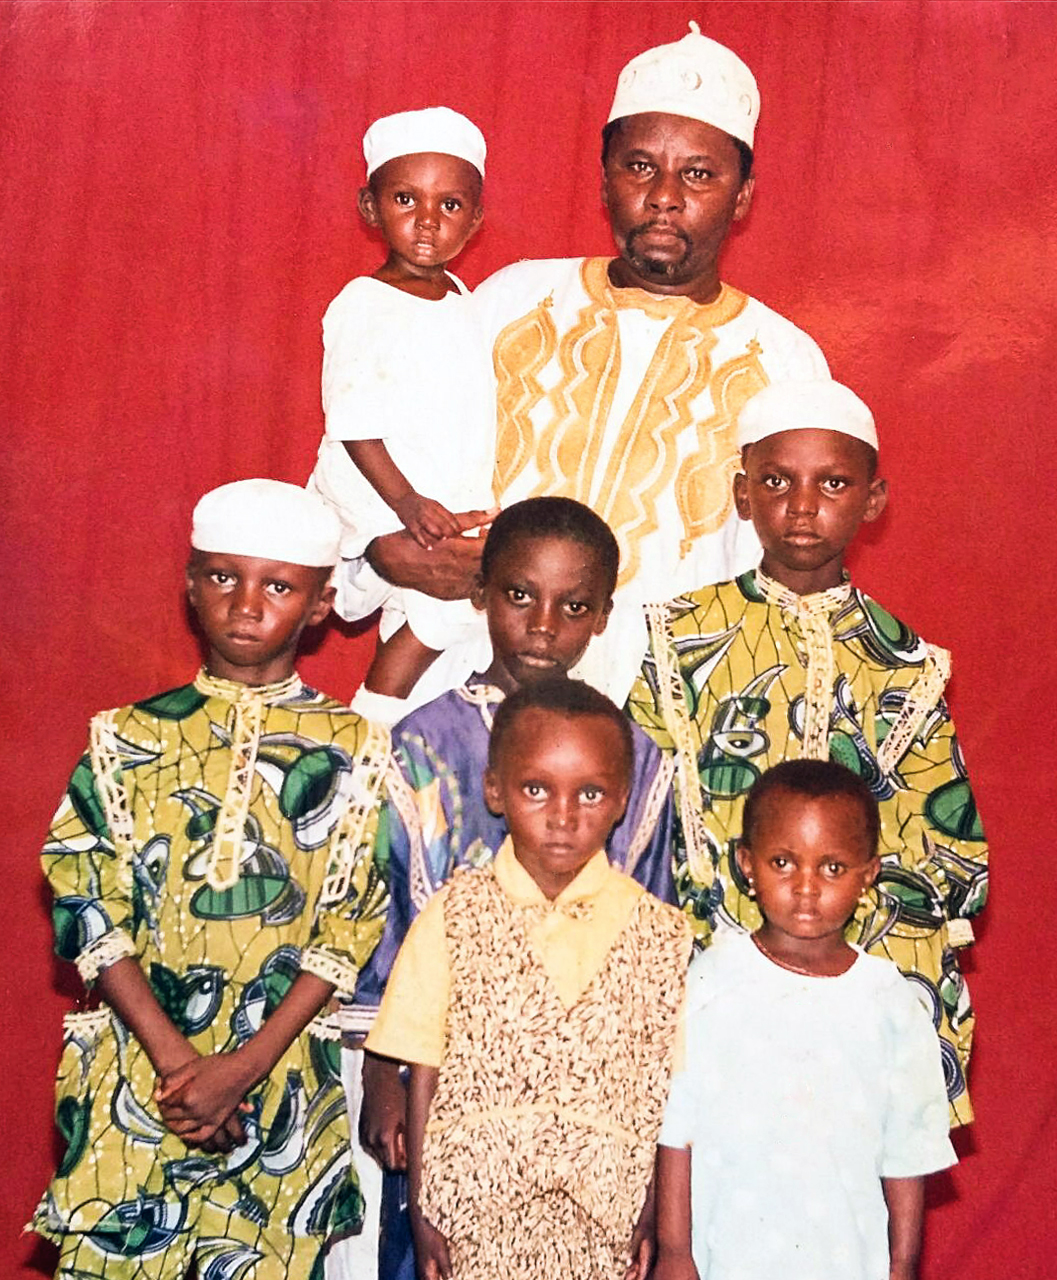 A young Ismail Jatta with his father, three brothers and cousins in his native Gambia, West Africa. Ismail is the tallest at the right.